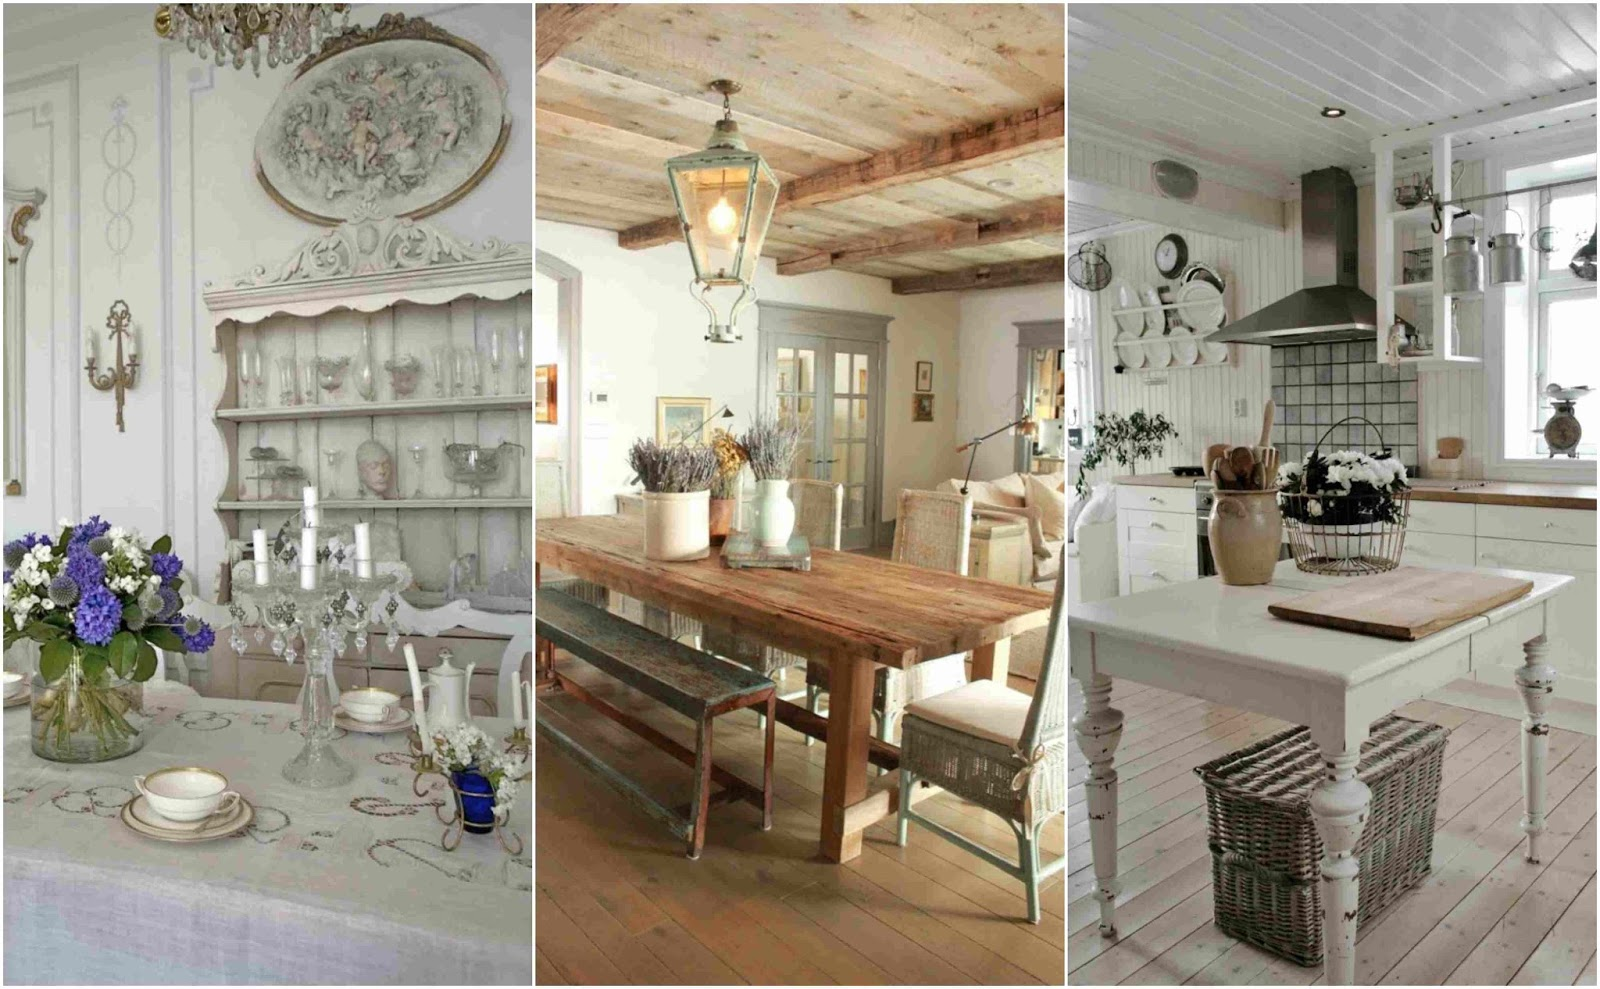 Kitchen design in the style of Provence - French and ...